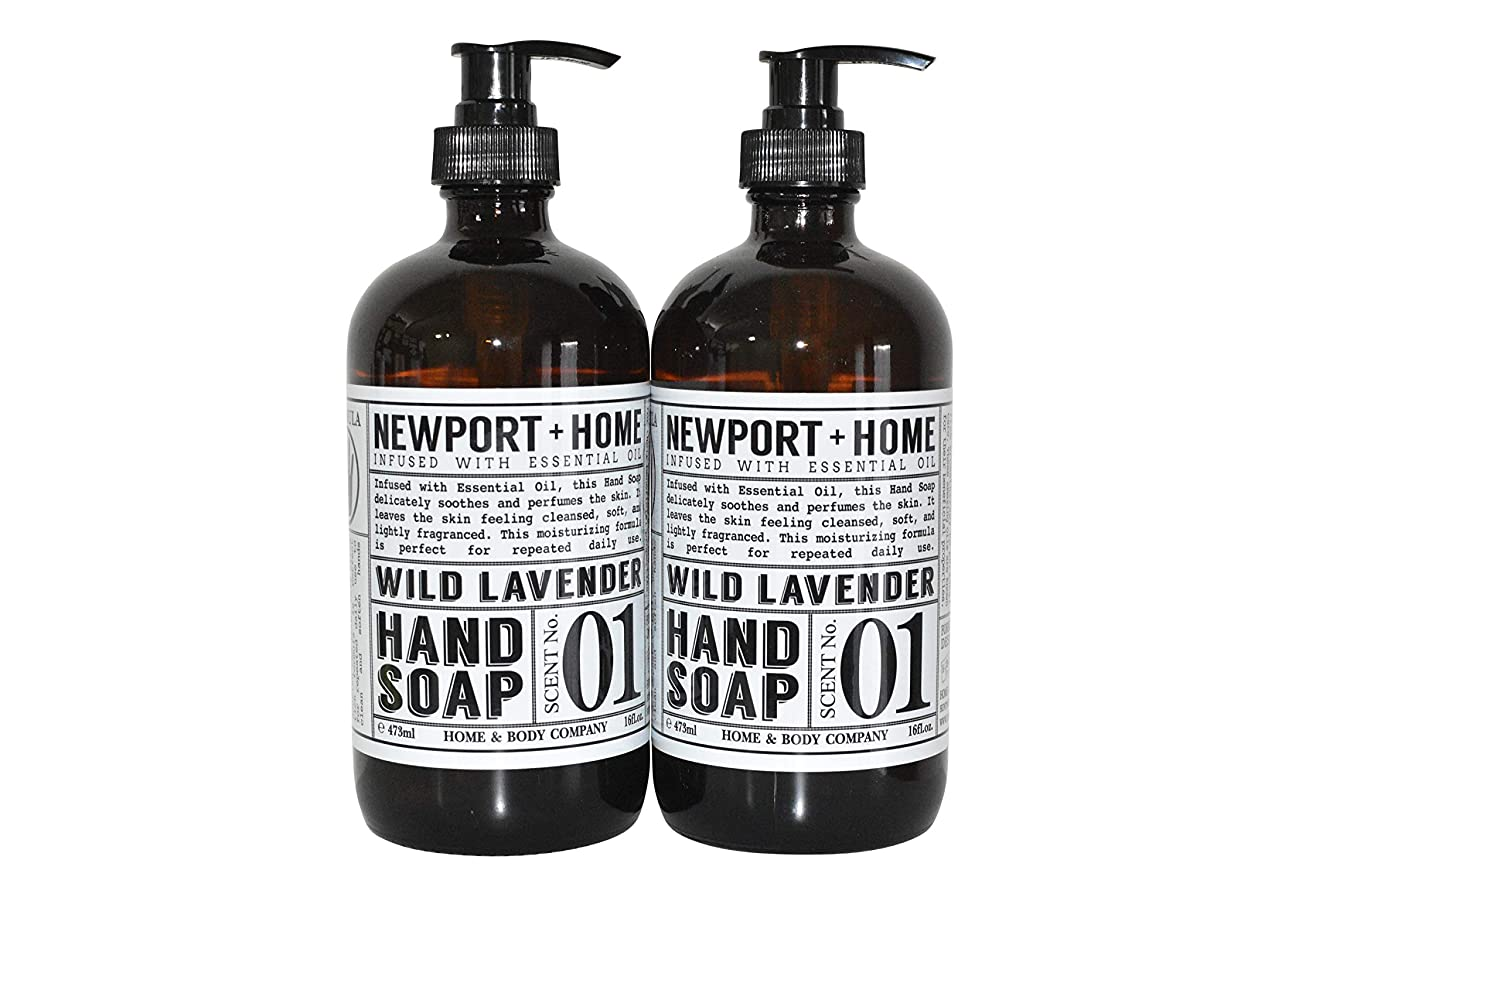 Newport Home and Body Co Hand Soap, Wild Lavender, 2 Glass Bottles 16 fl oz each